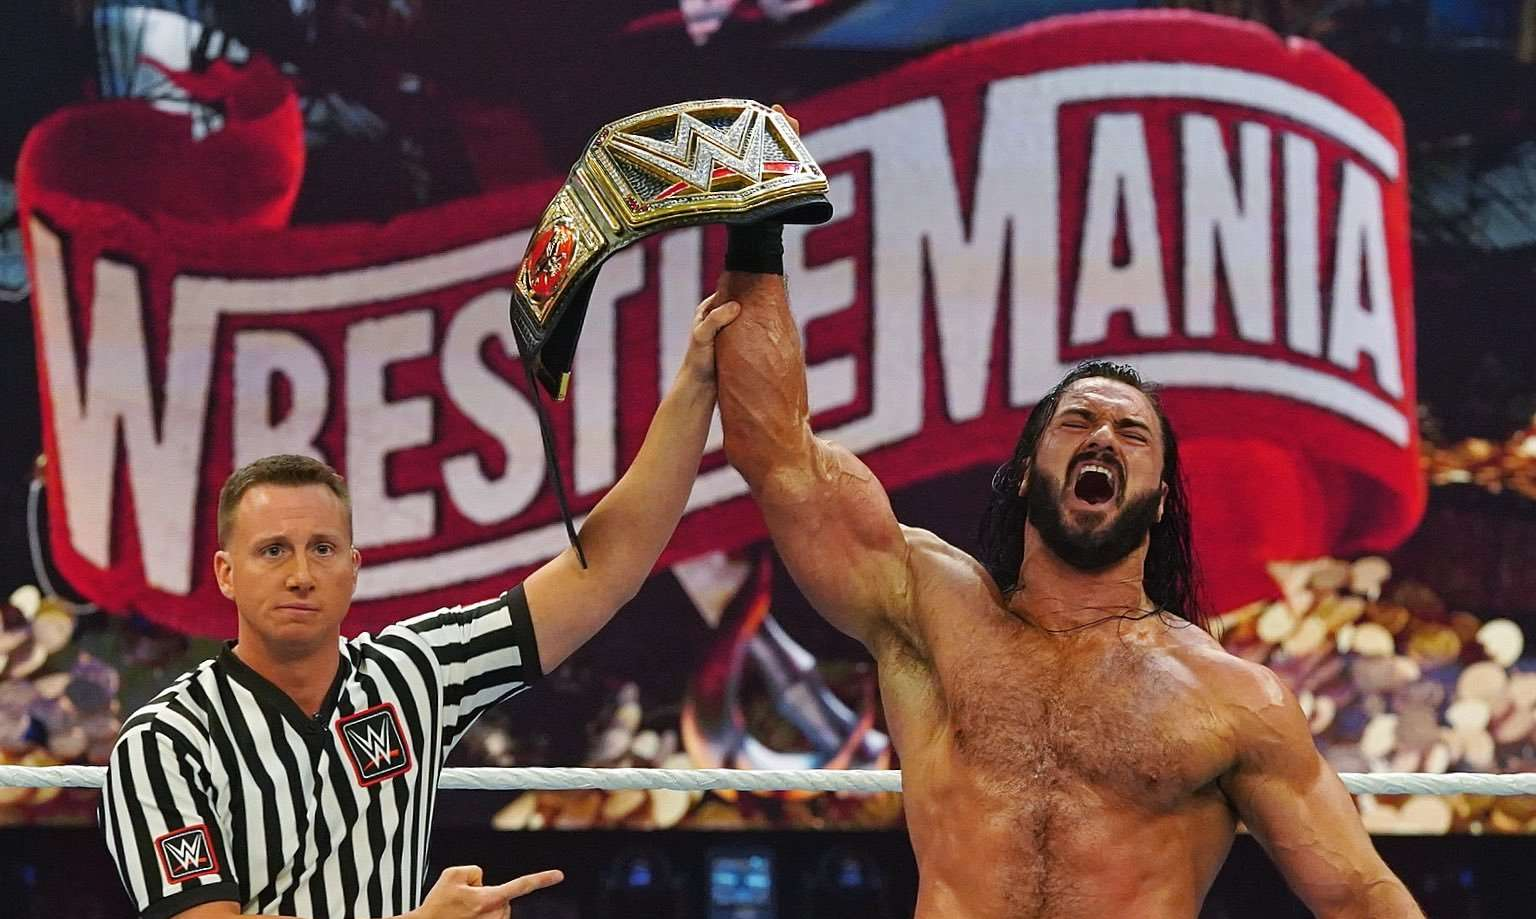 WrestleMania 36 review: Against all odds in front of no fans, WWE puts on two near-perfect shows